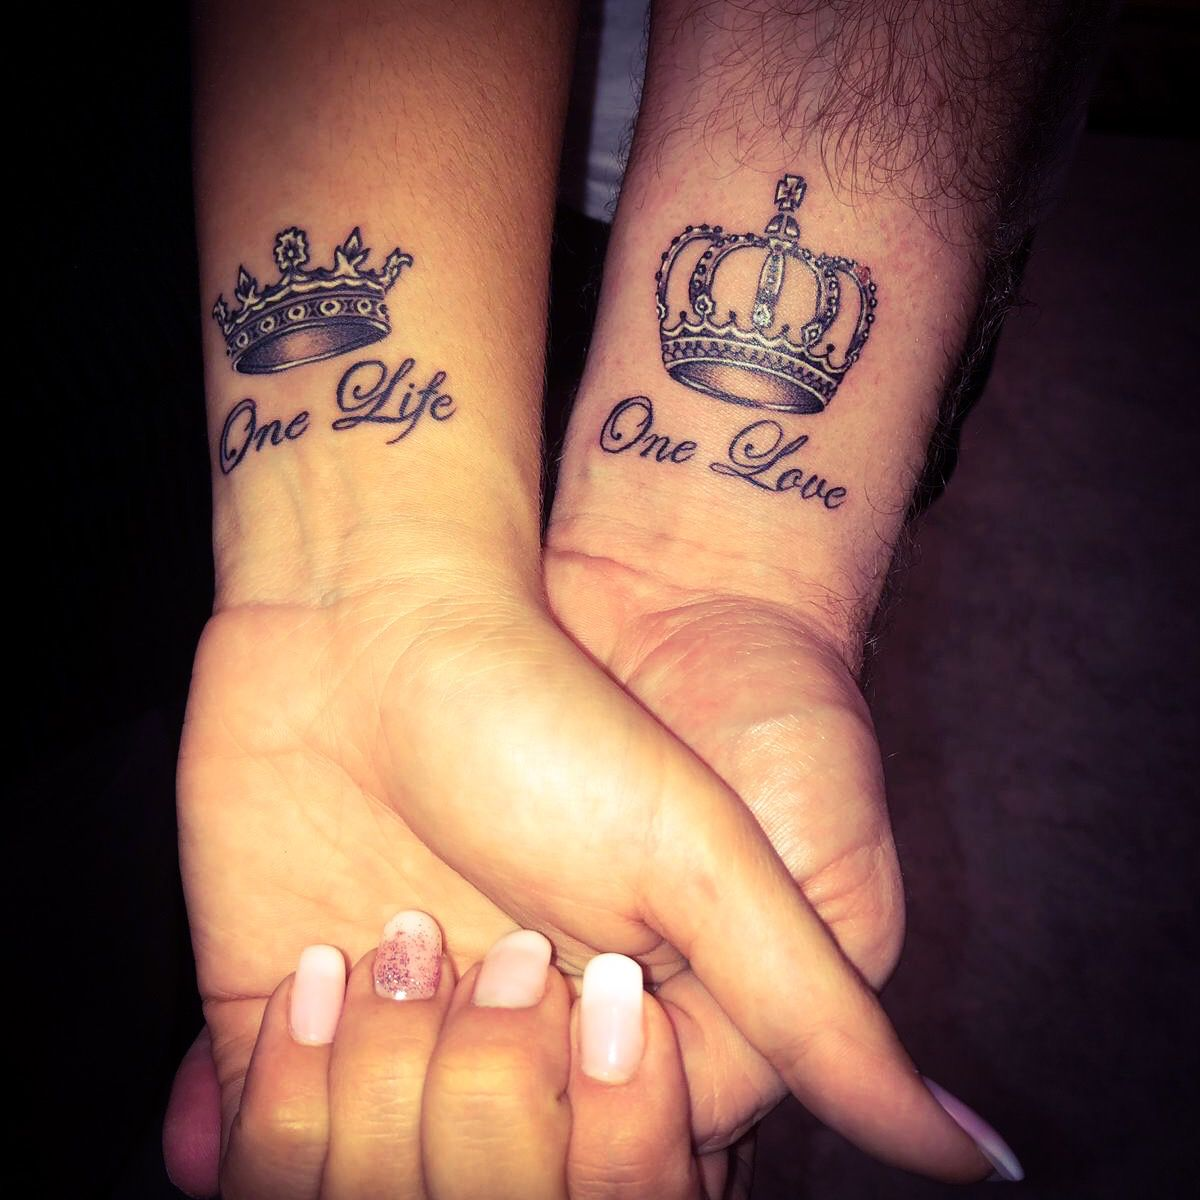 One Love One Life Tattoo Couple One Life Tattoo Couple Tattoos Friend Tattoos